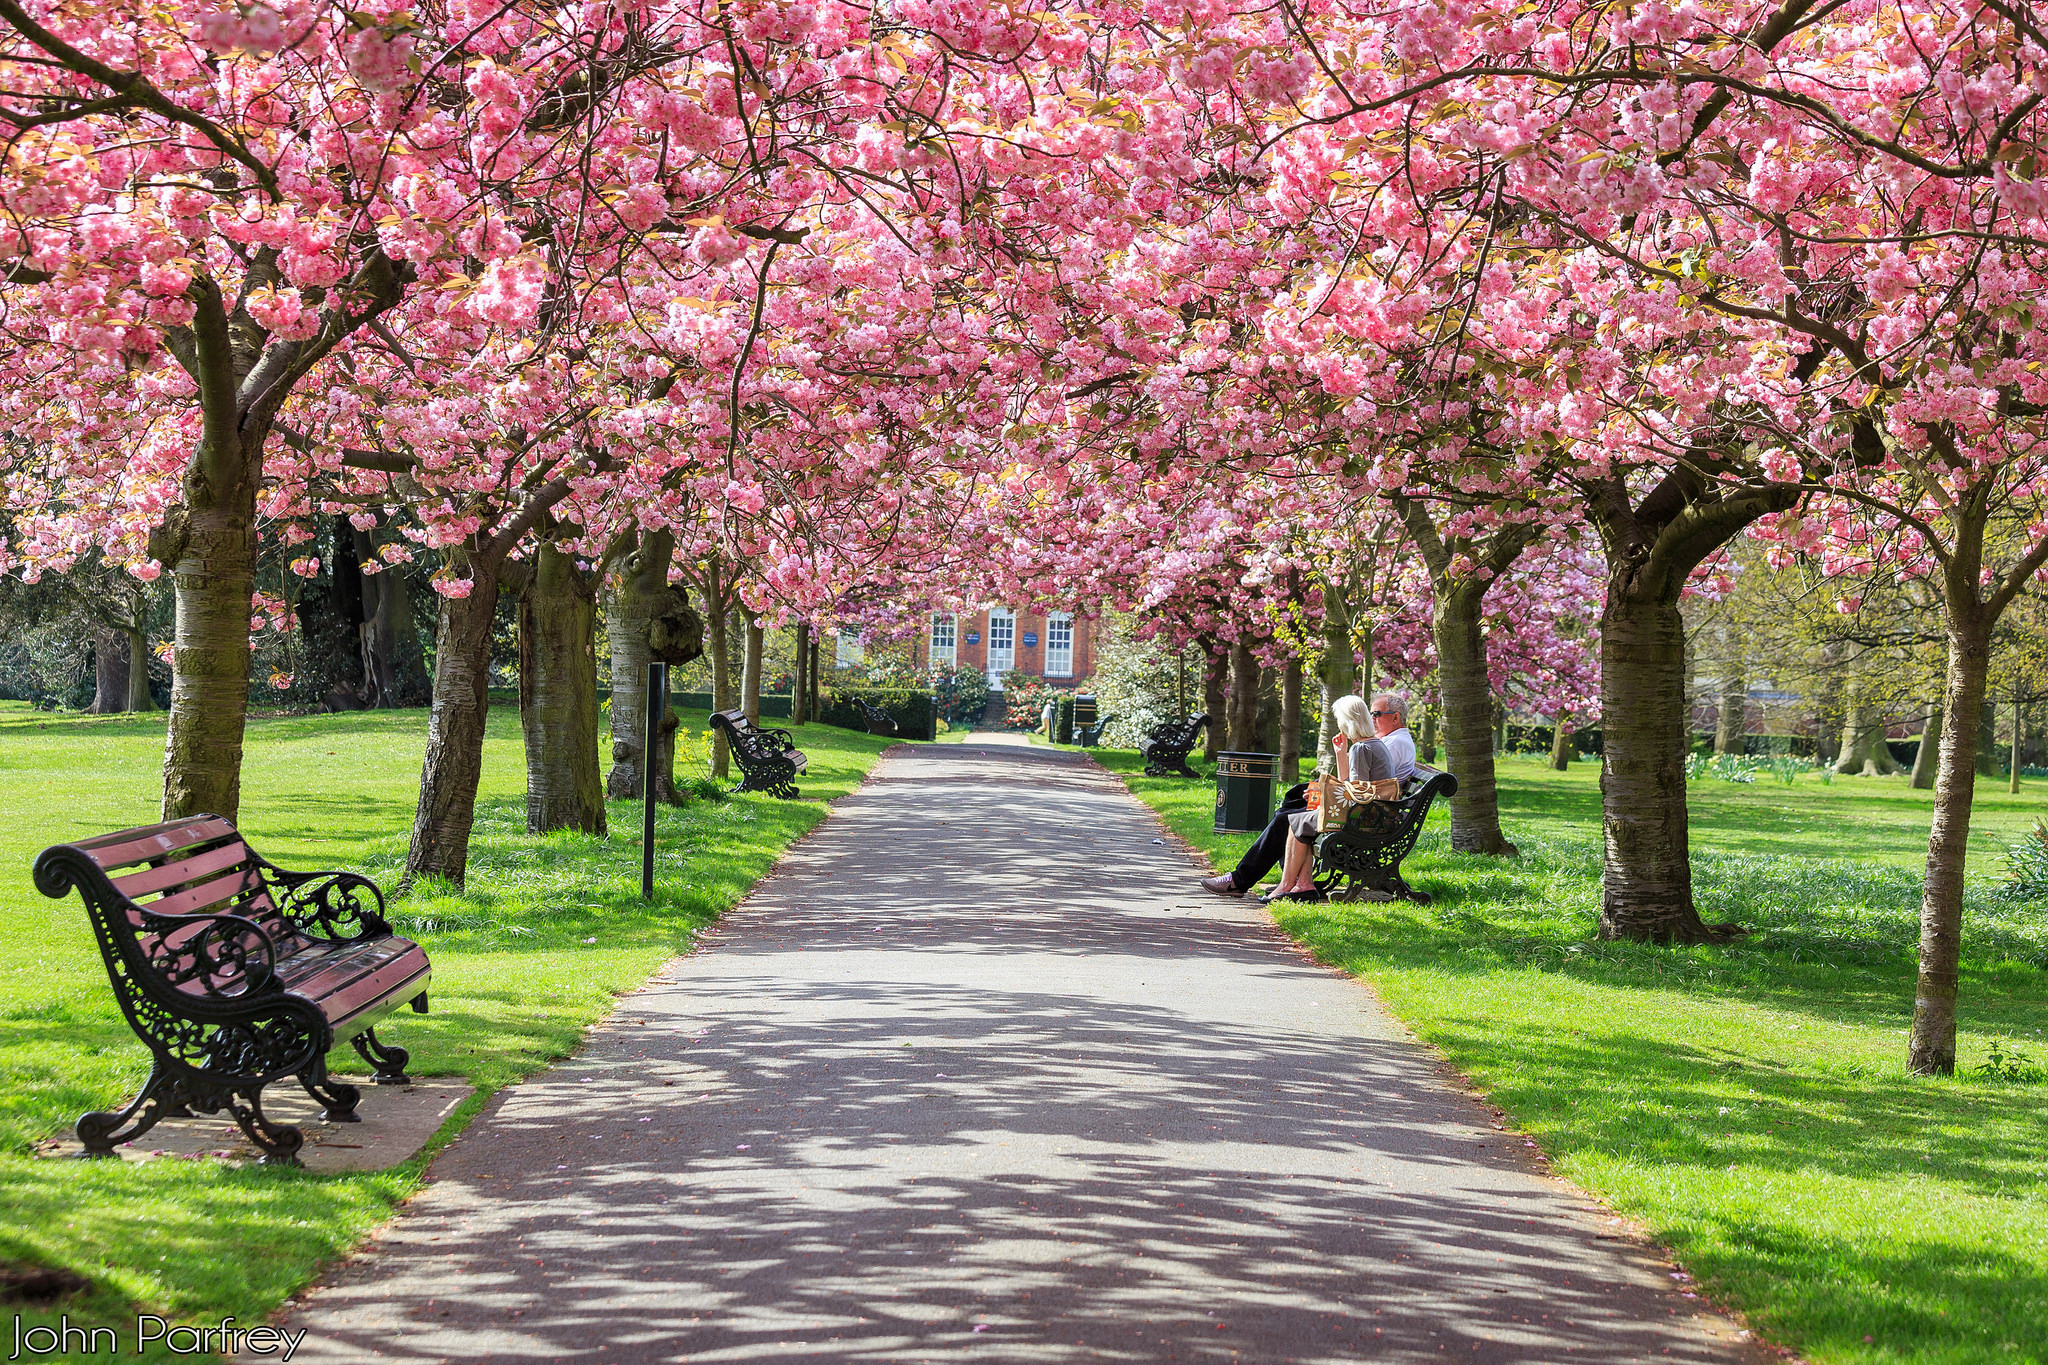 Blossom trees over a path in Greenwich Park, south-east London.